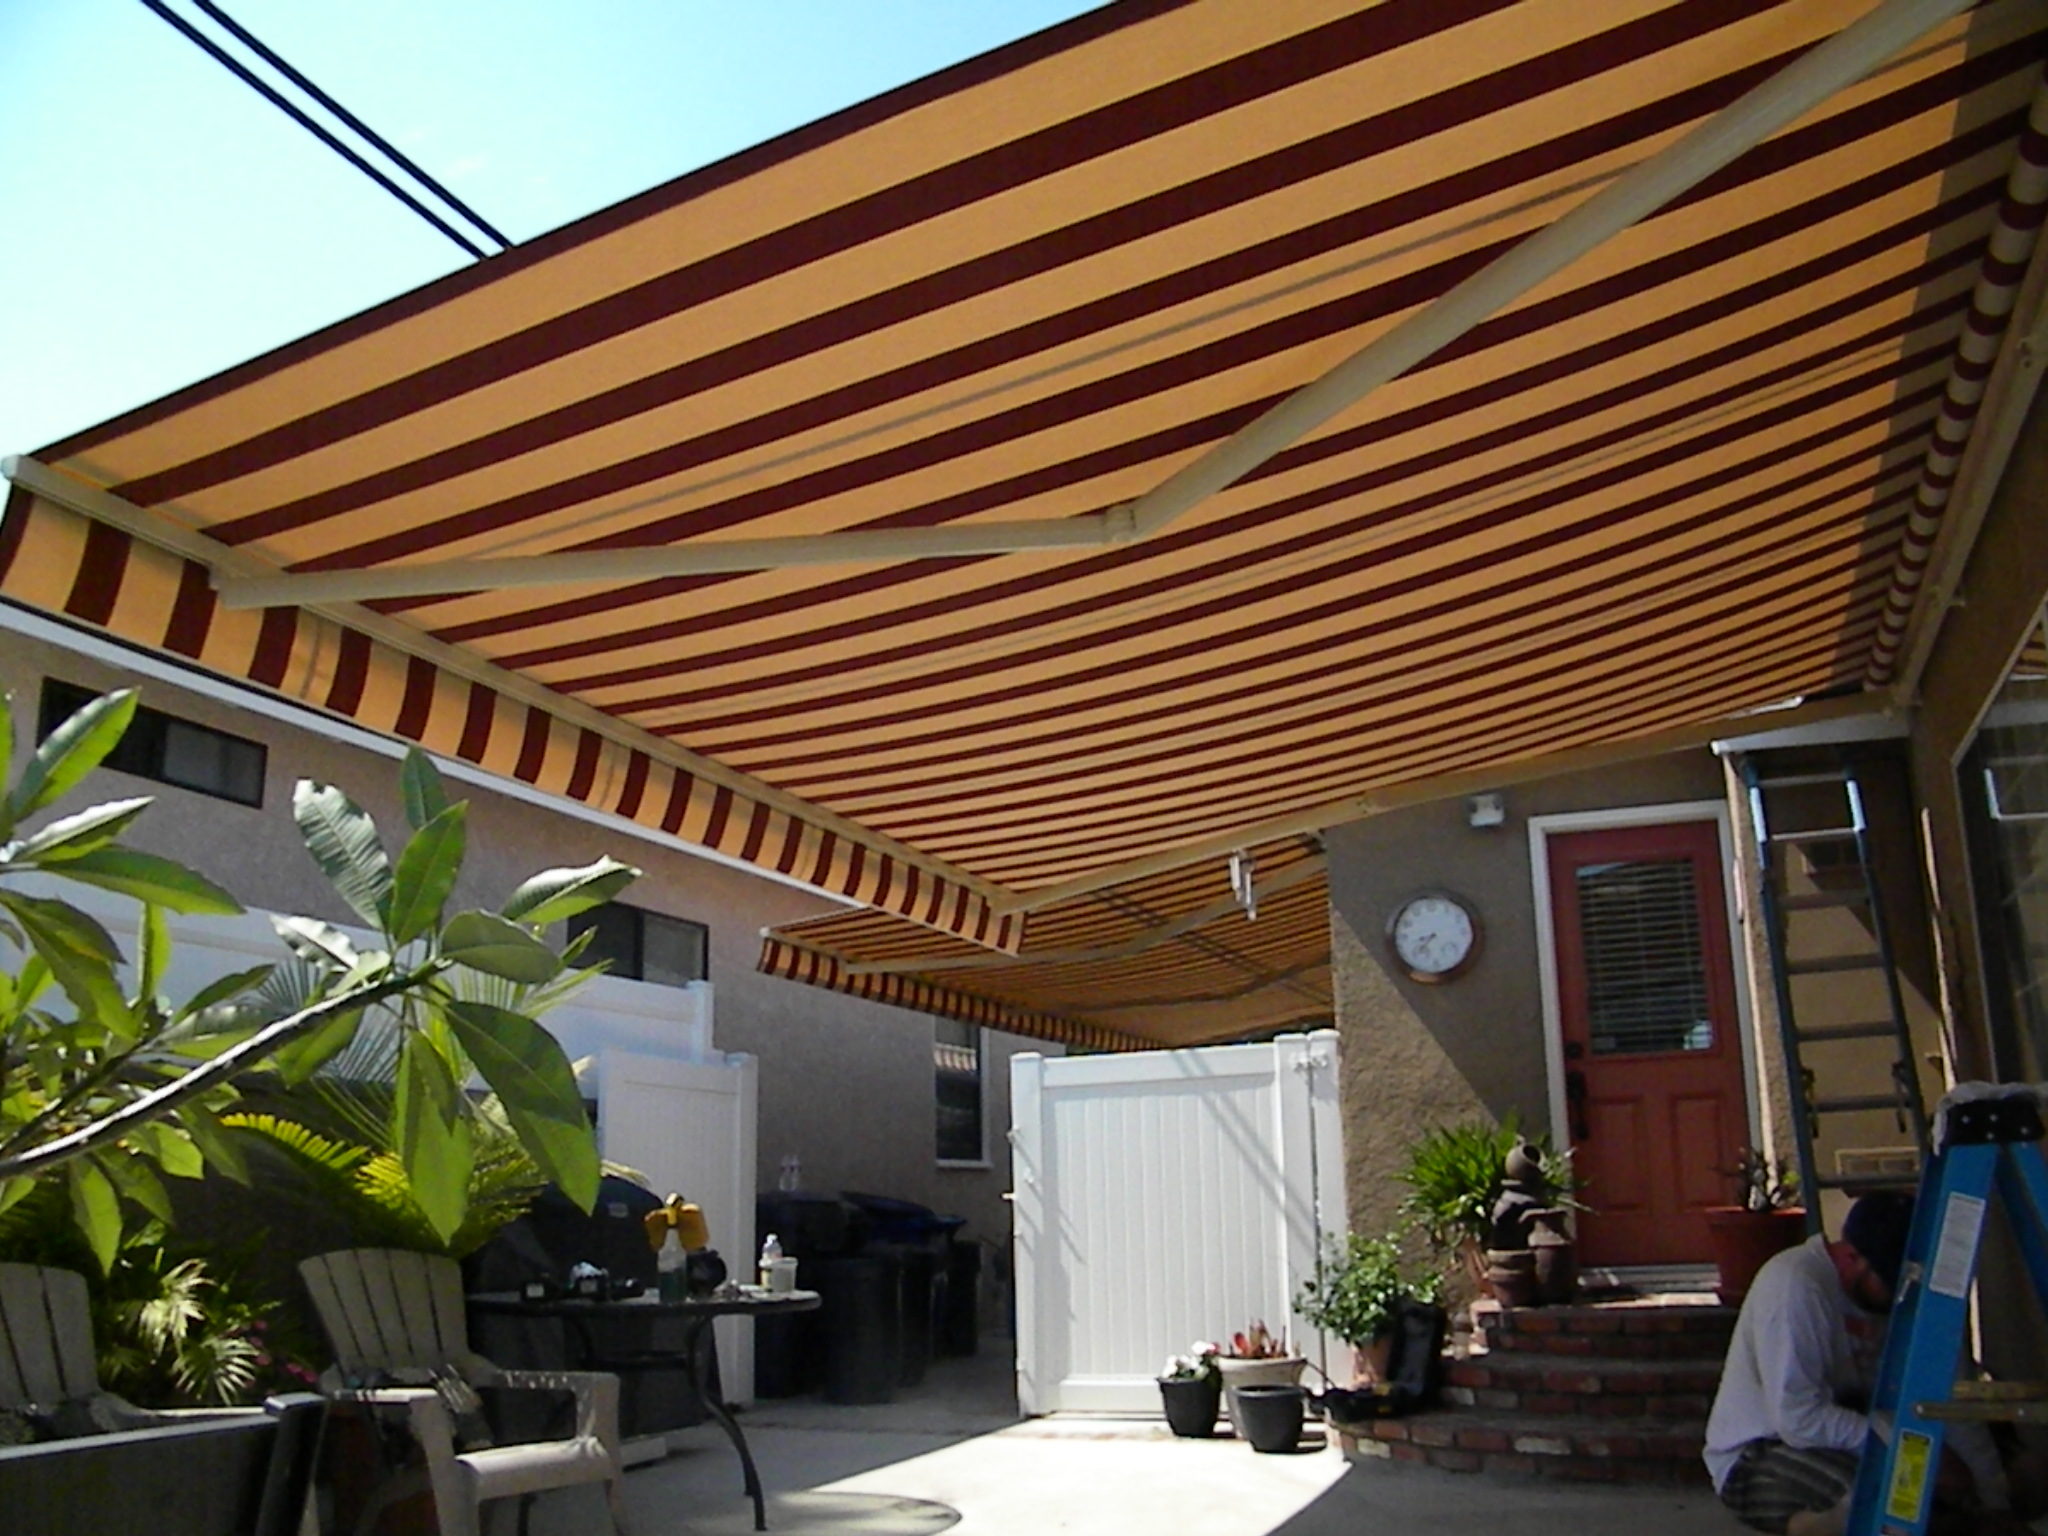 retractable awnings made in the shade